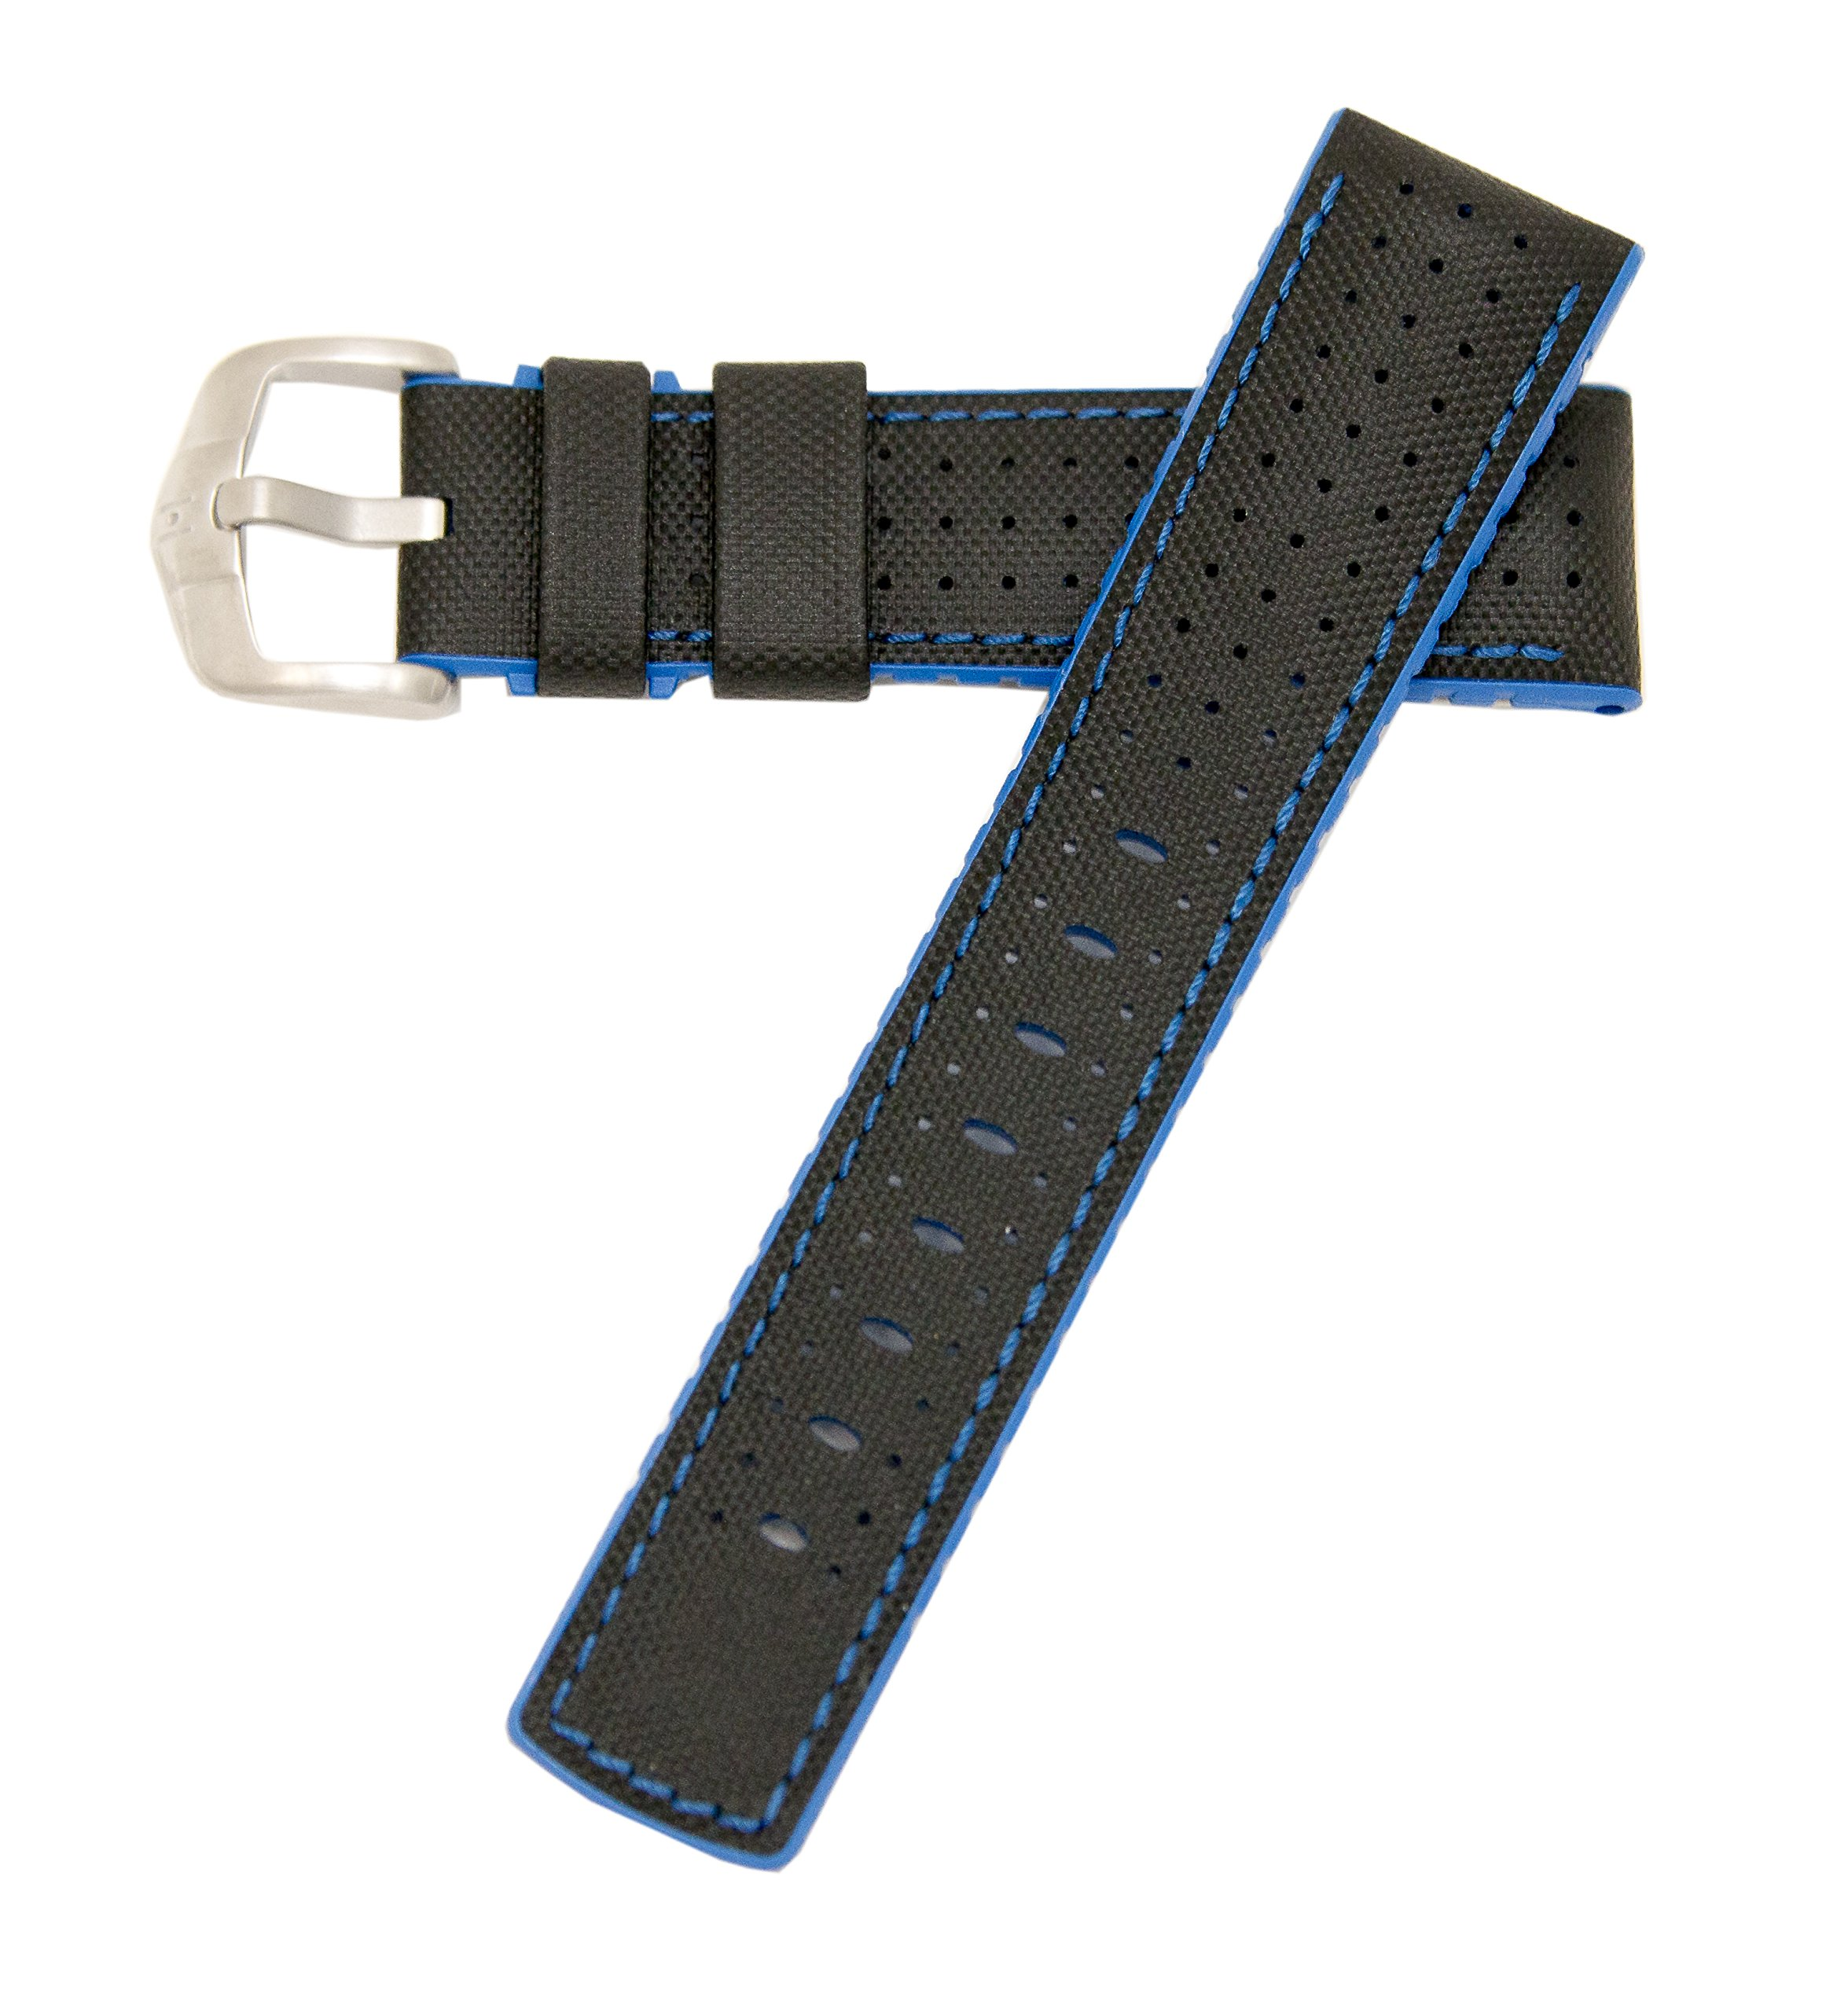 Hirsch Performance Robby Sailcloth Style 22mm Leather and Rubber Watch Band Black / Blue